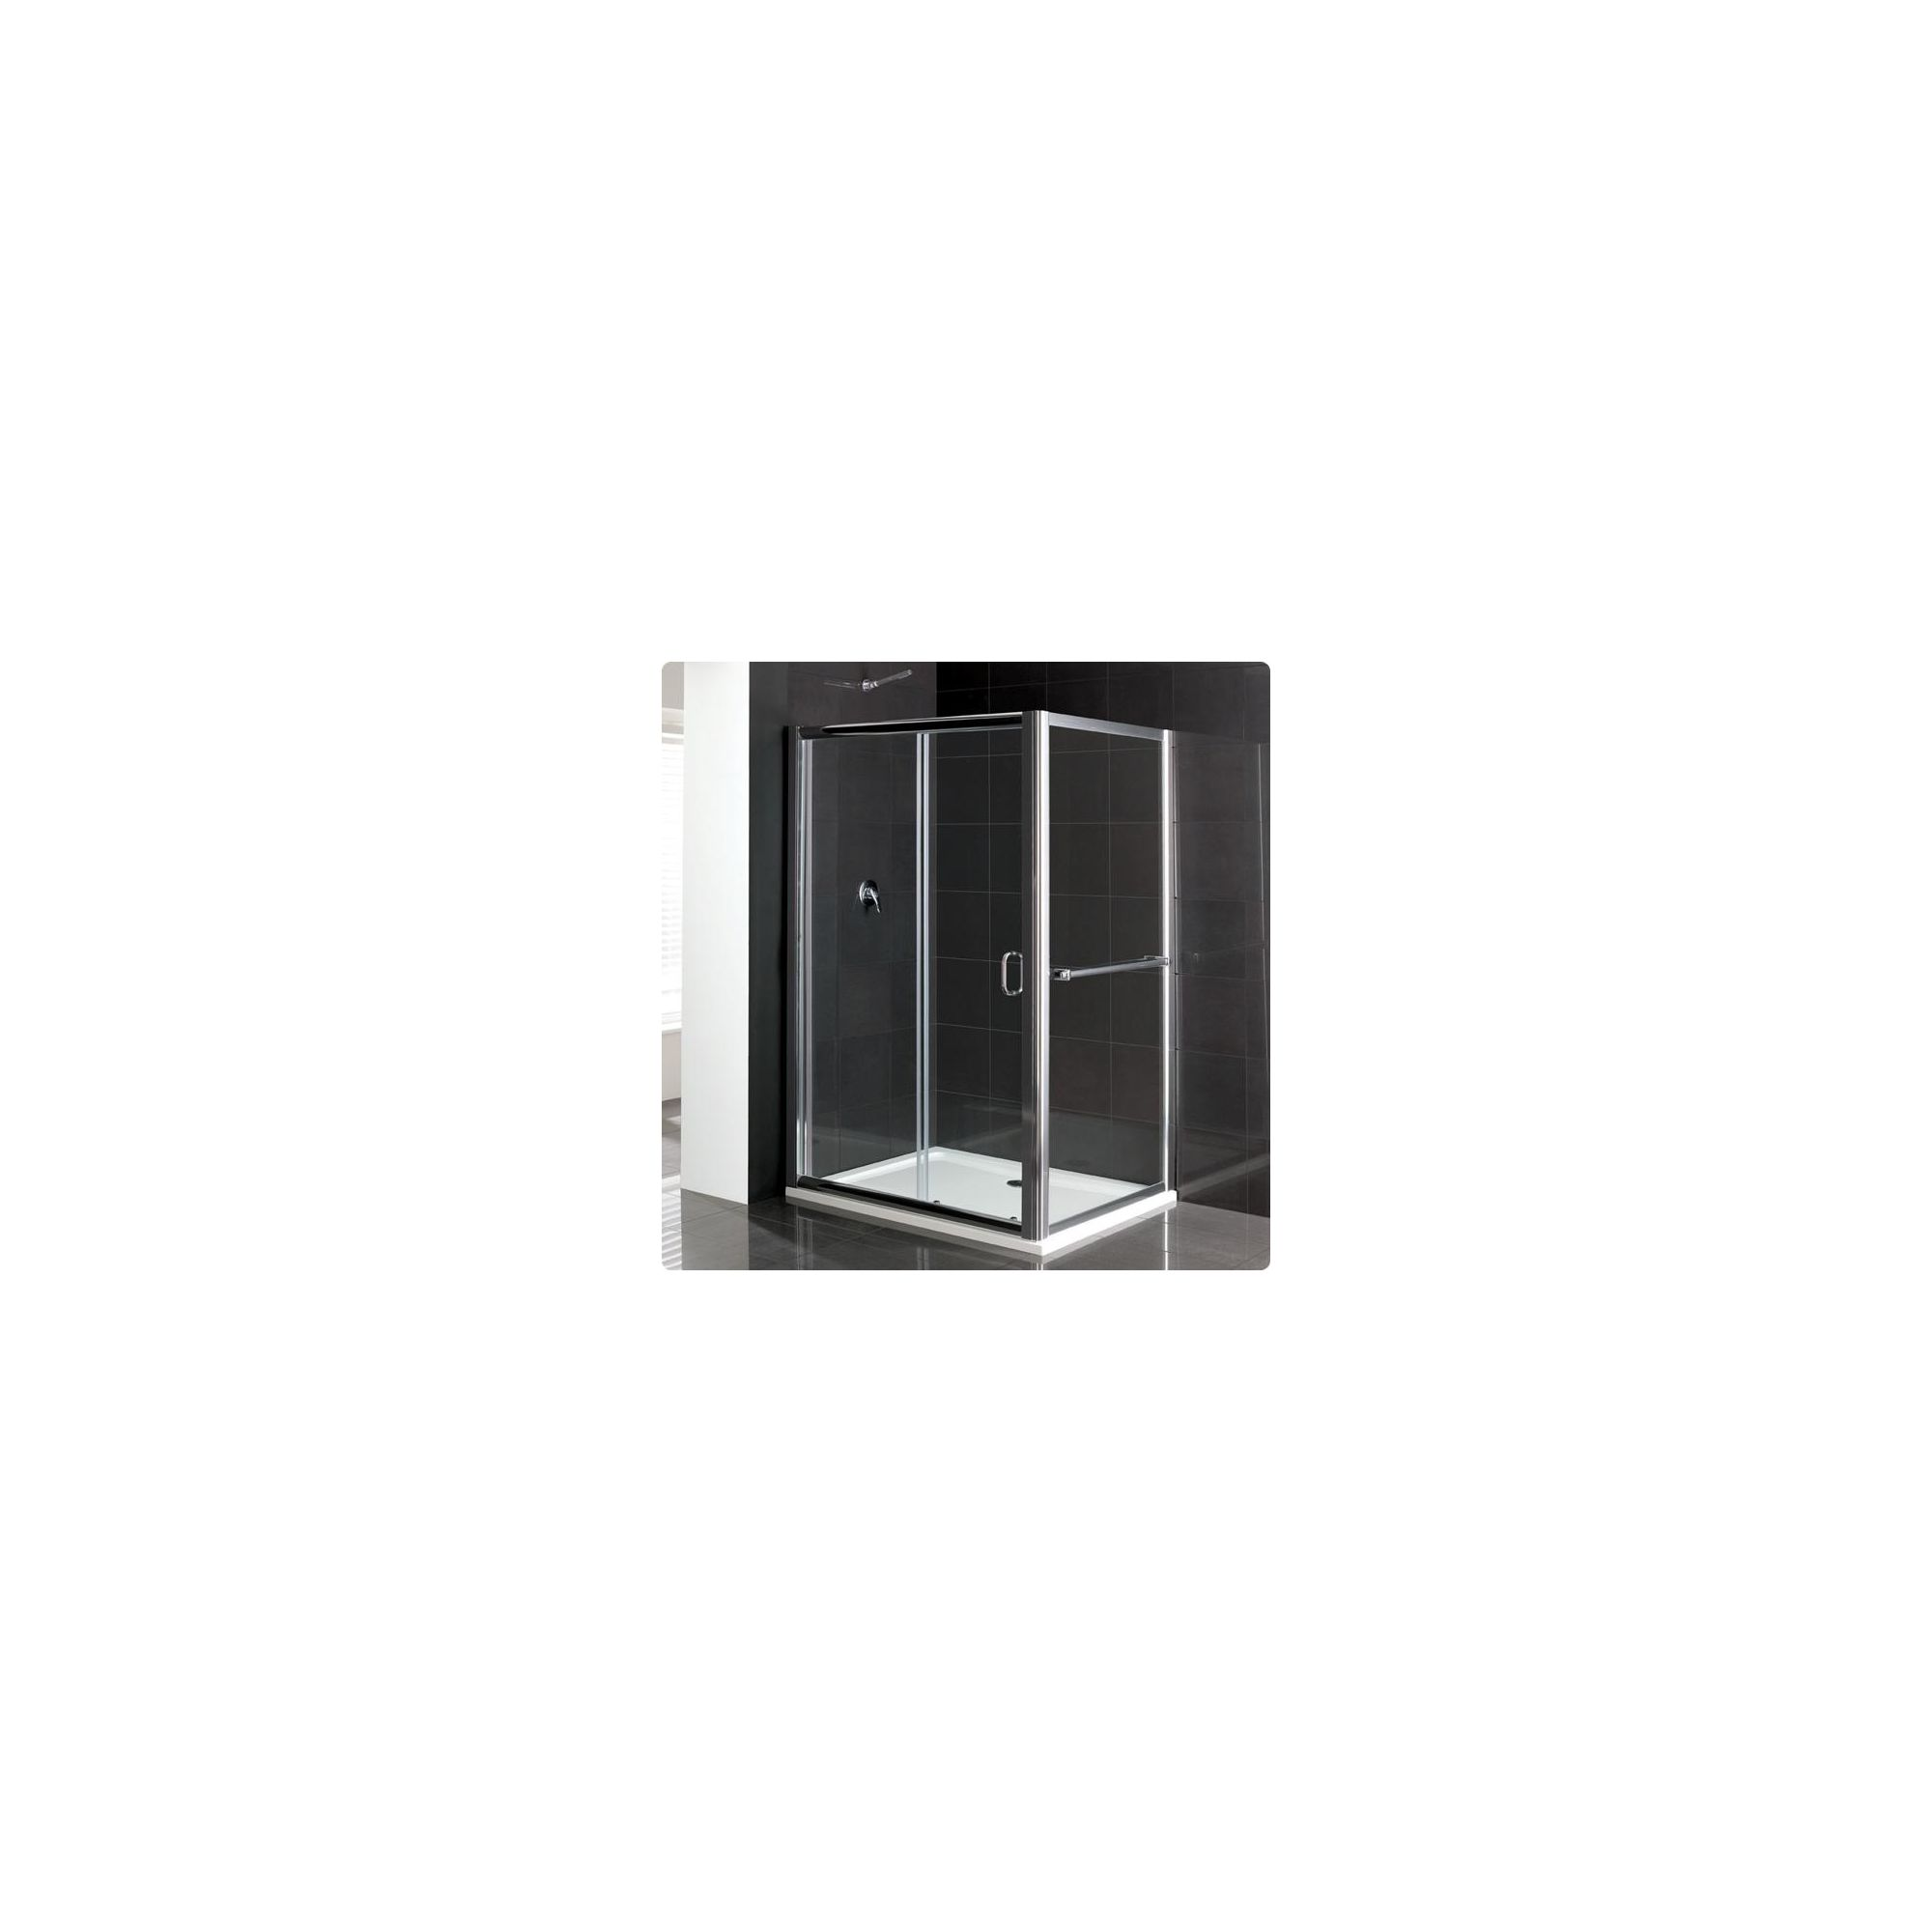 Duchy Elite Silver Sliding Door Shower Enclosure with Towel Rail, 1600mm x 700mm, Standard Tray, 6mm Glass at Tesco Direct